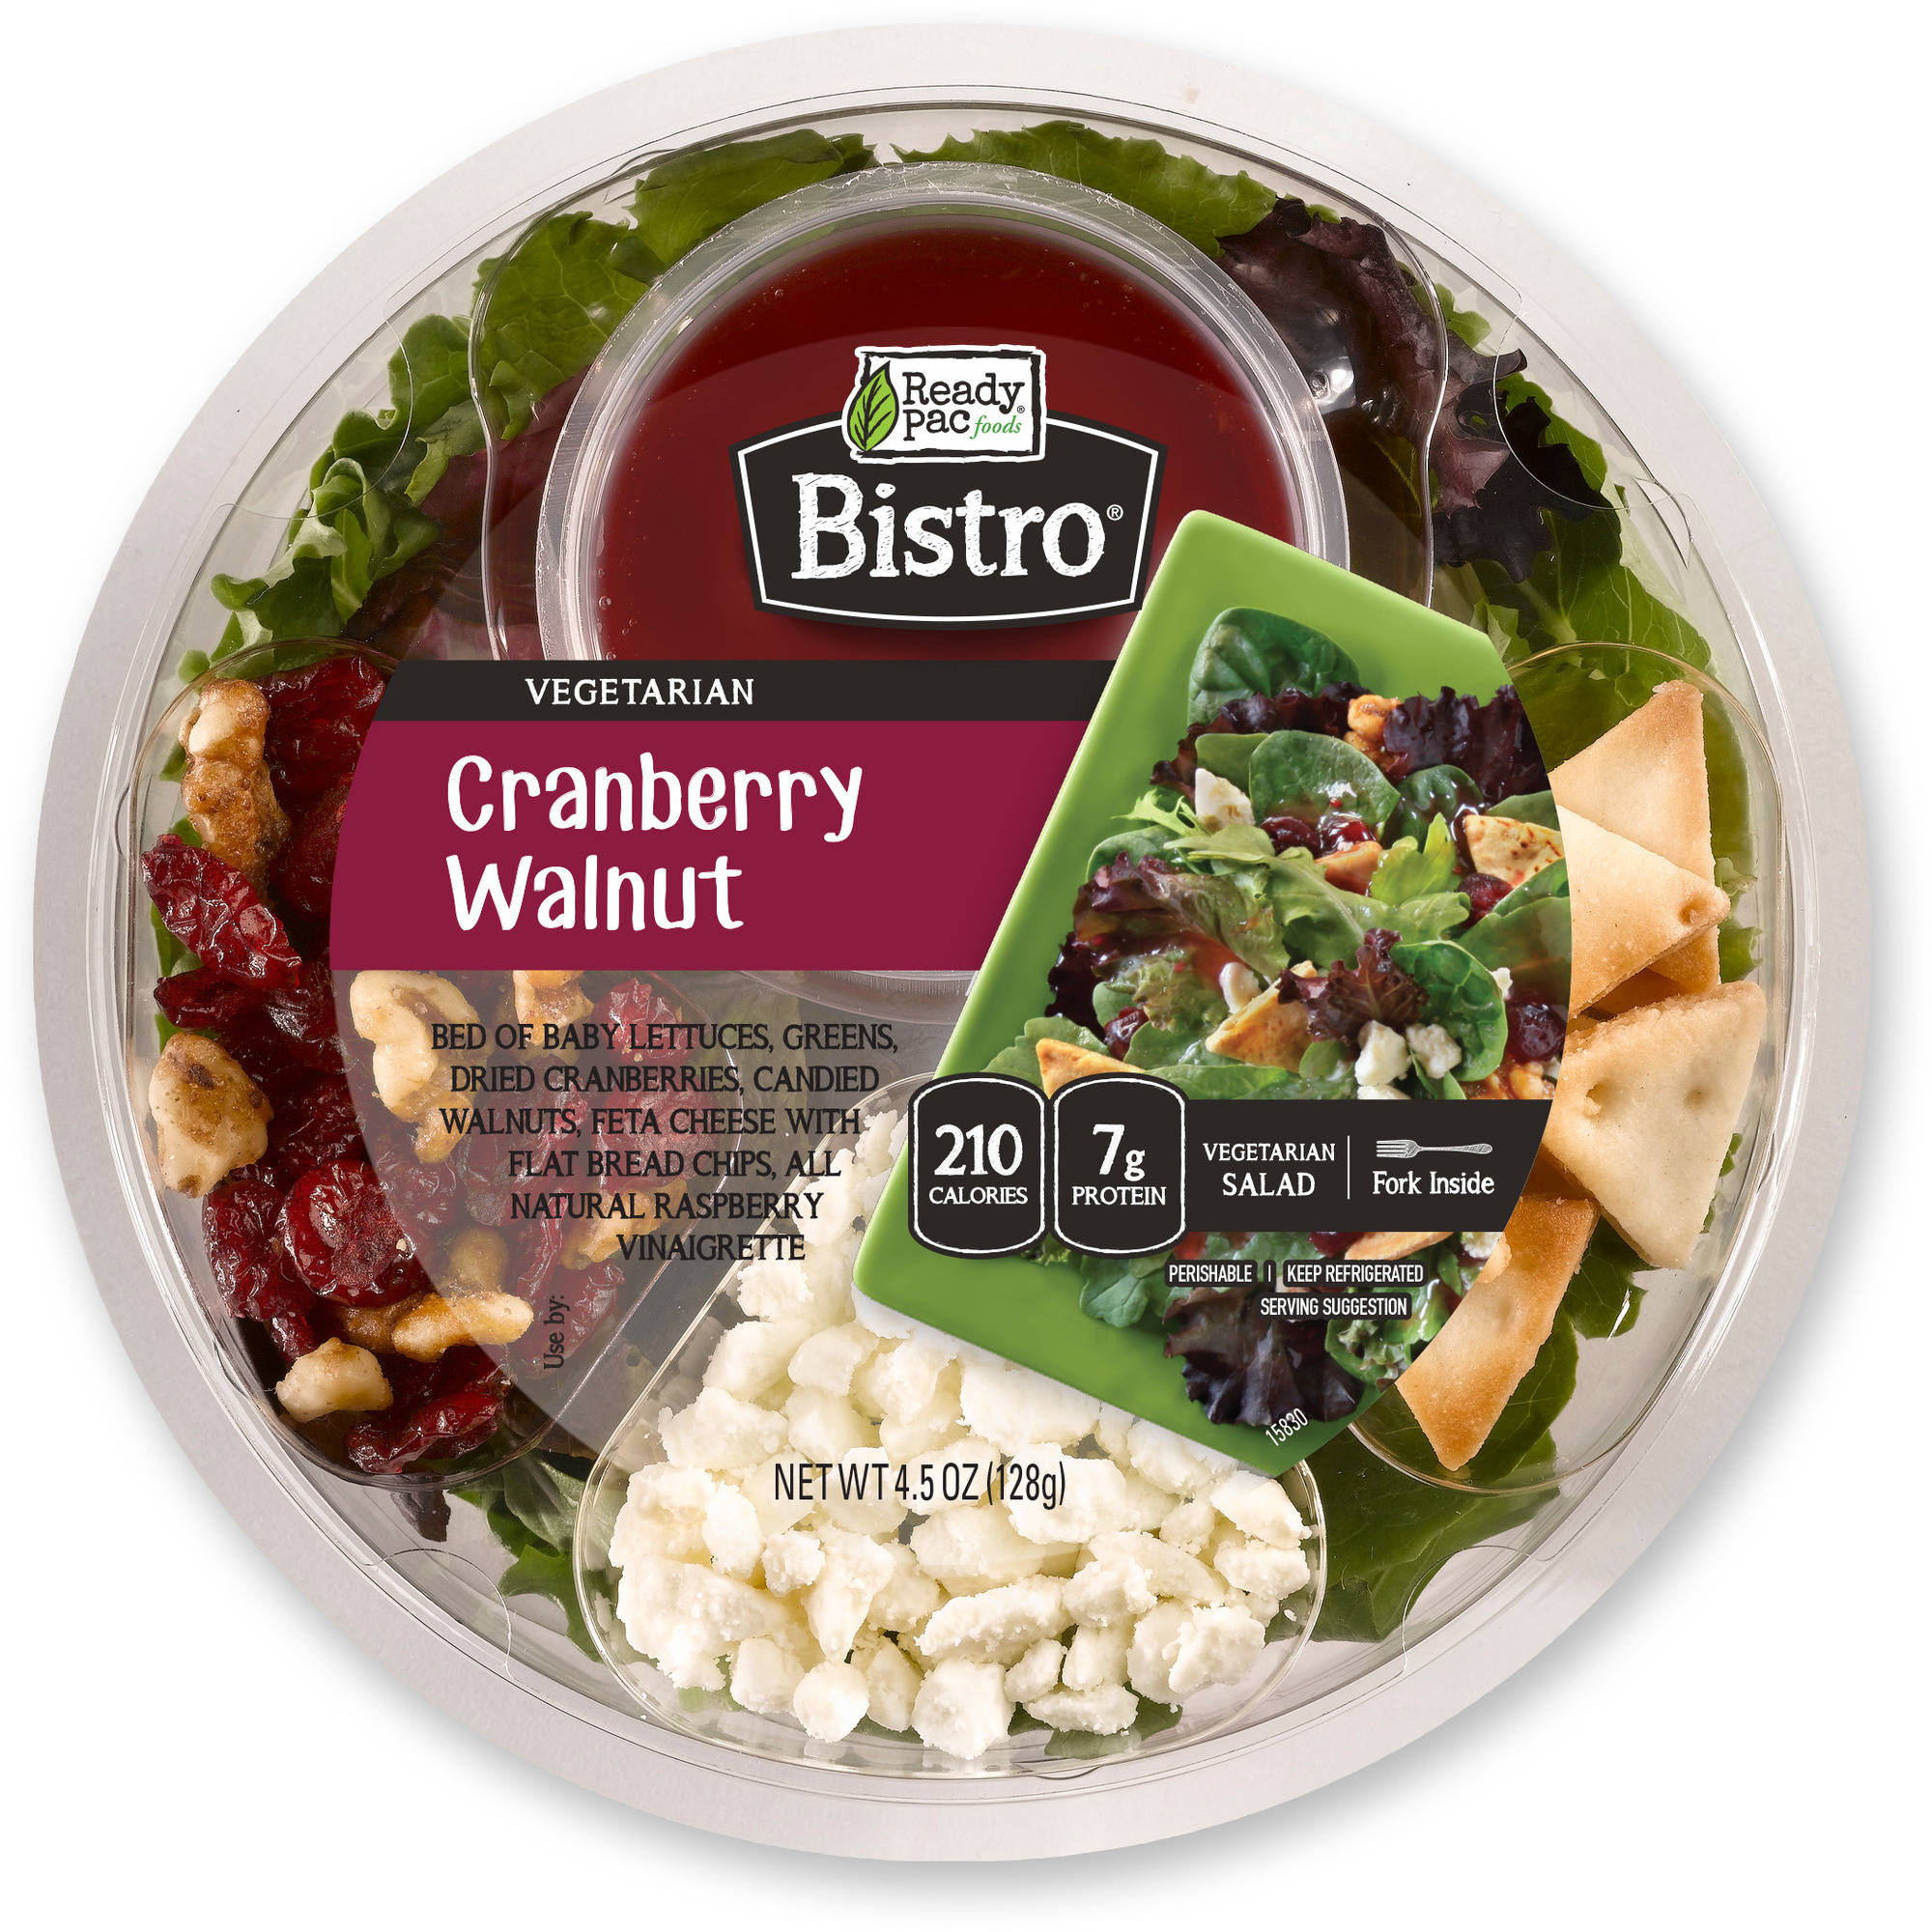 Ready Pac Bistro Cranberry Walnut Salad, 4.5 oz